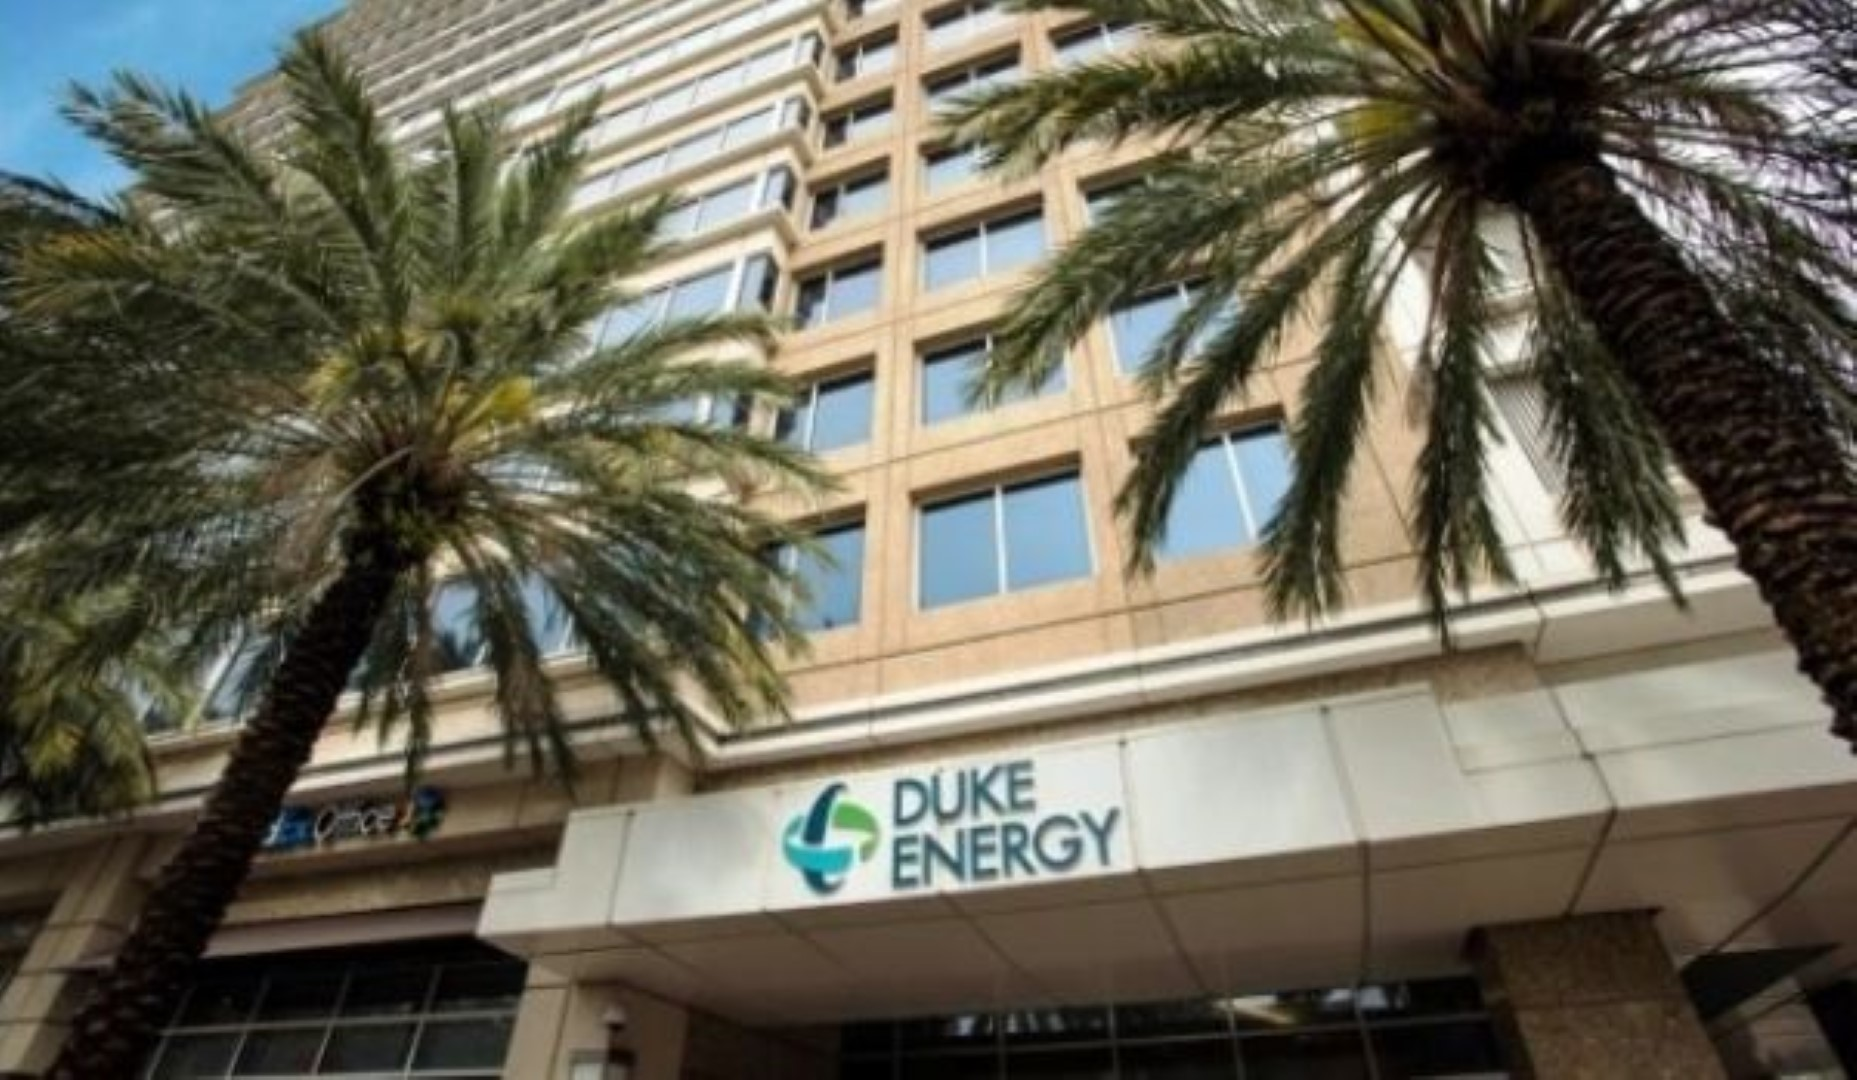 Duke-Energy-Large.jpg